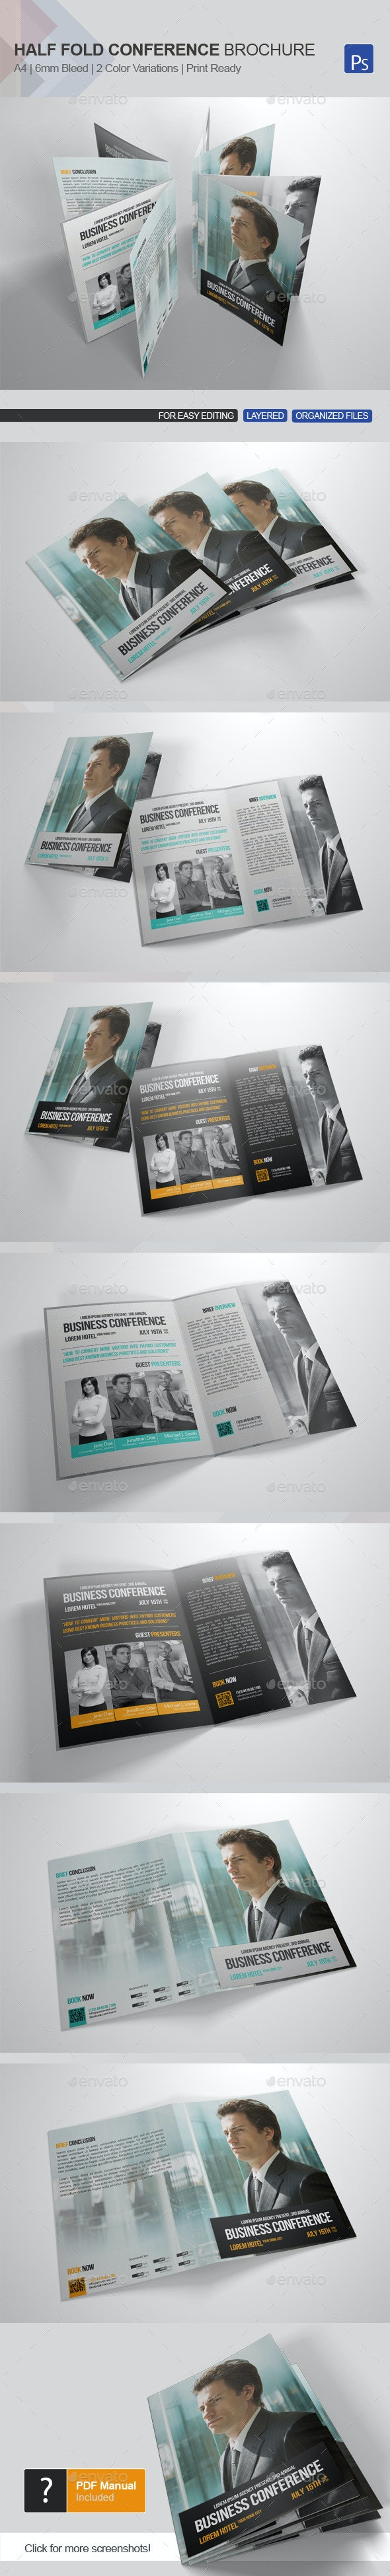 Half-fold Business Conference Brochure Template - Corporate Brochures